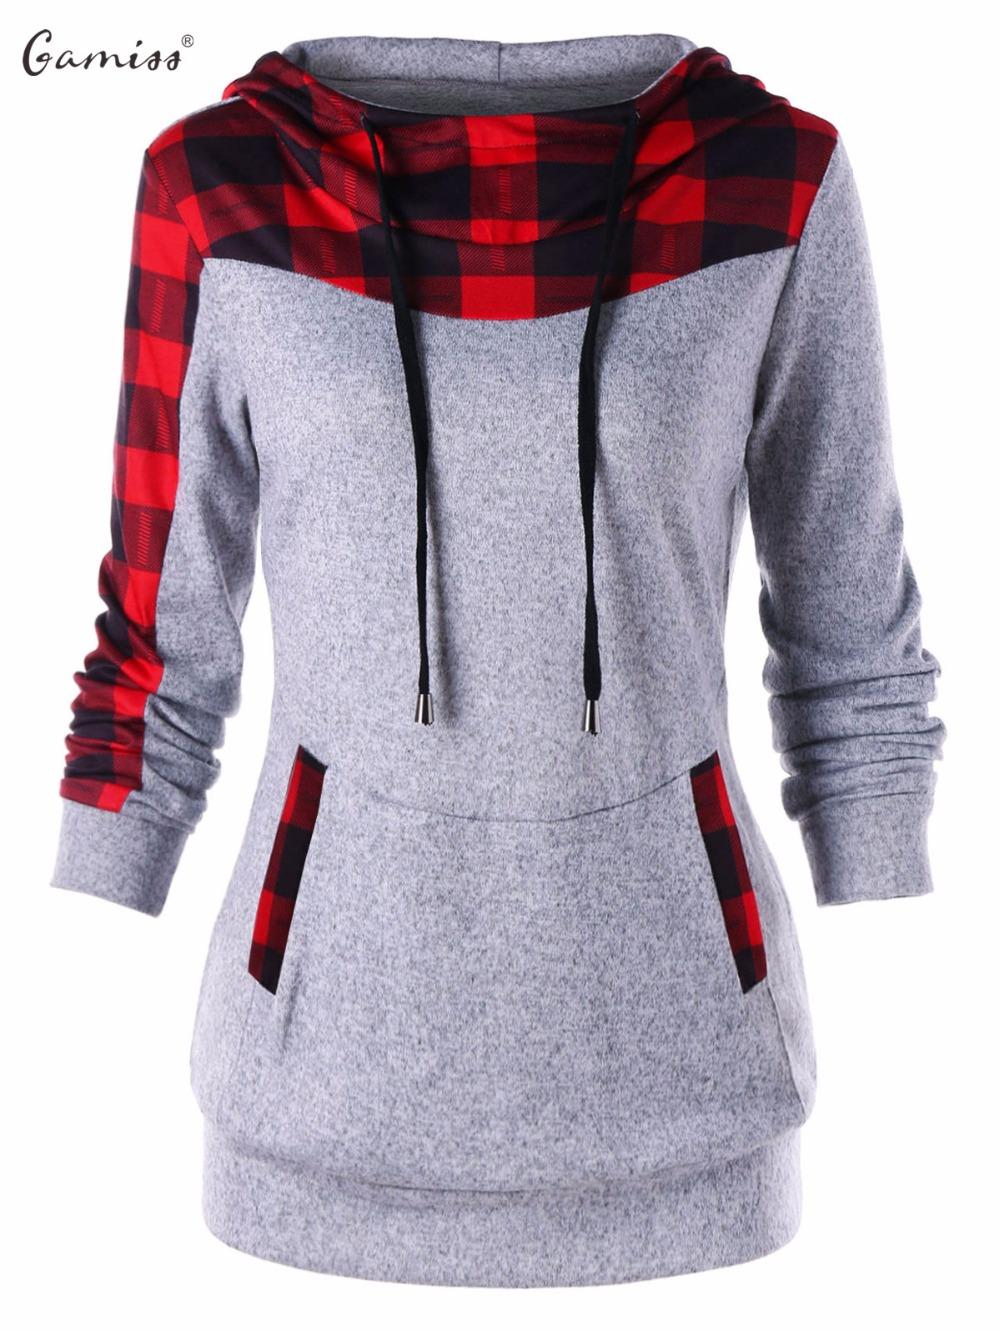 Gamiss Women Plaid Hoodies Sweatshirts Trim Drawstring Neck Hoodie ... 7f1ff8ae5